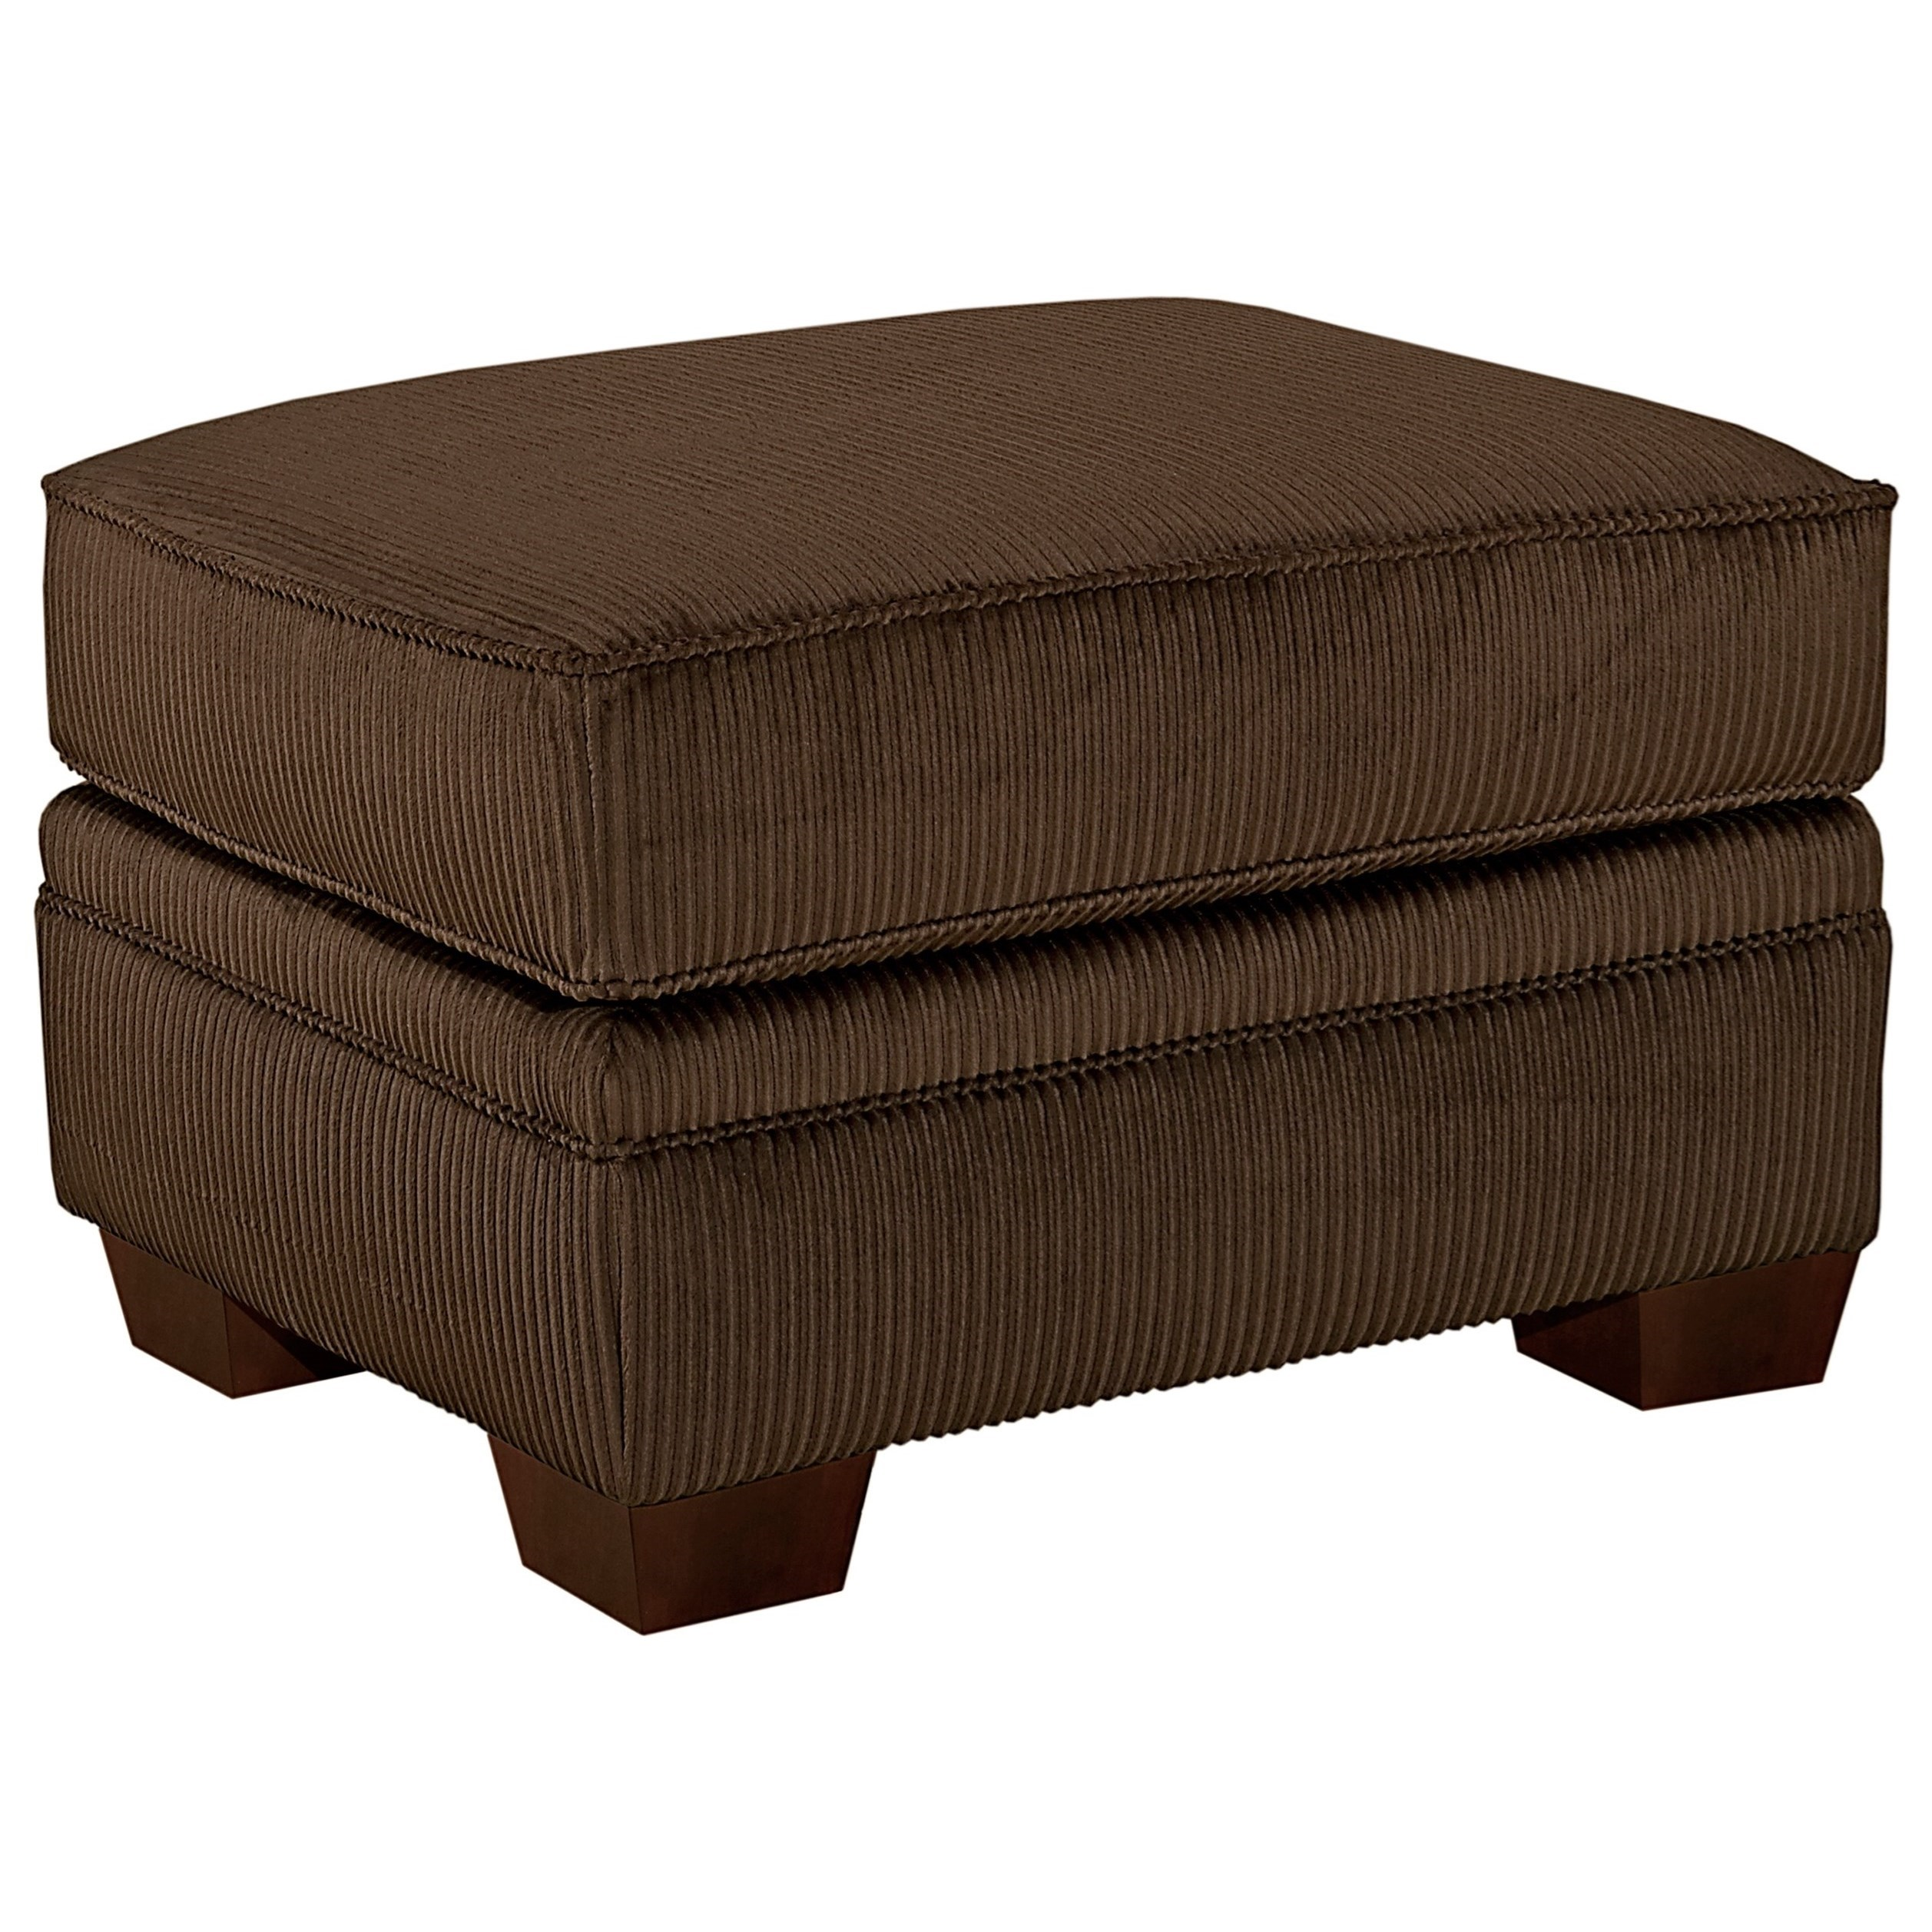 Broyhill Furniture Zachary Ottoman - Item Number: 7902-5-7973-87